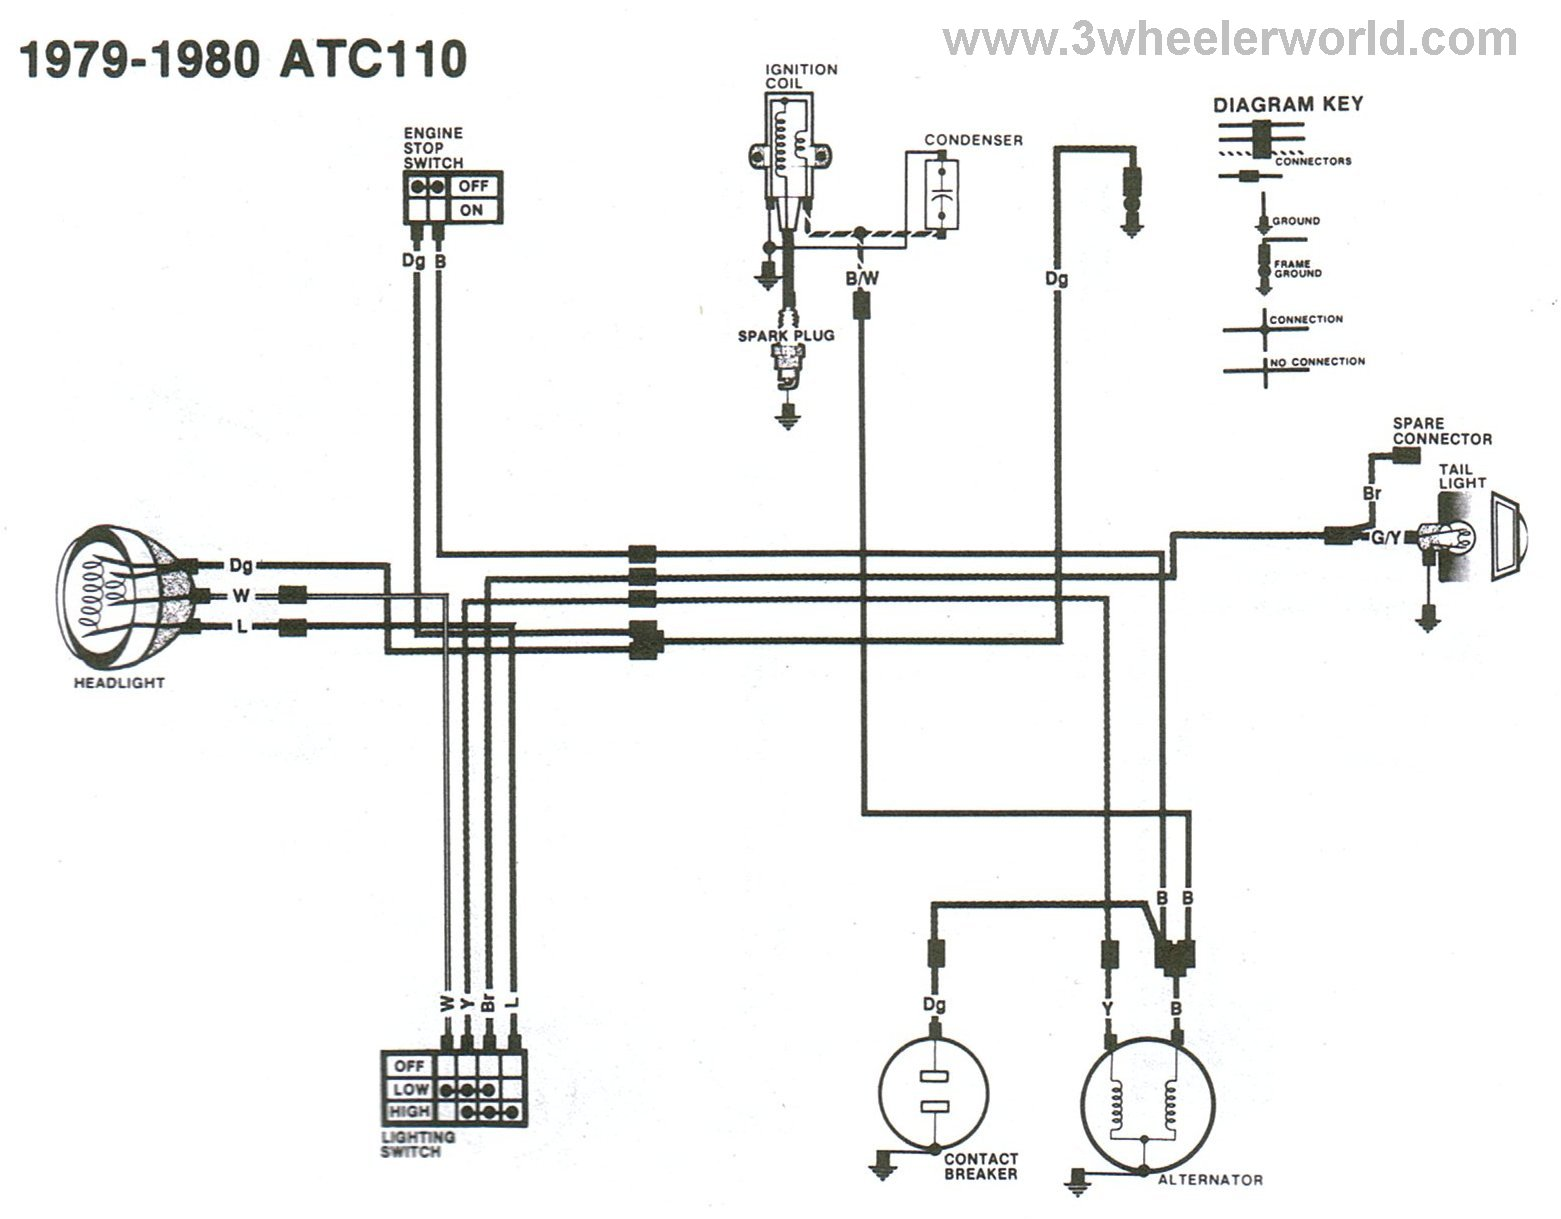 ATC110x79Thru80 1980 honda atc 110 wiring diagram honda 50 wiring diagram \u2022 wiring honda big red wiring diagram at bayanpartner.co